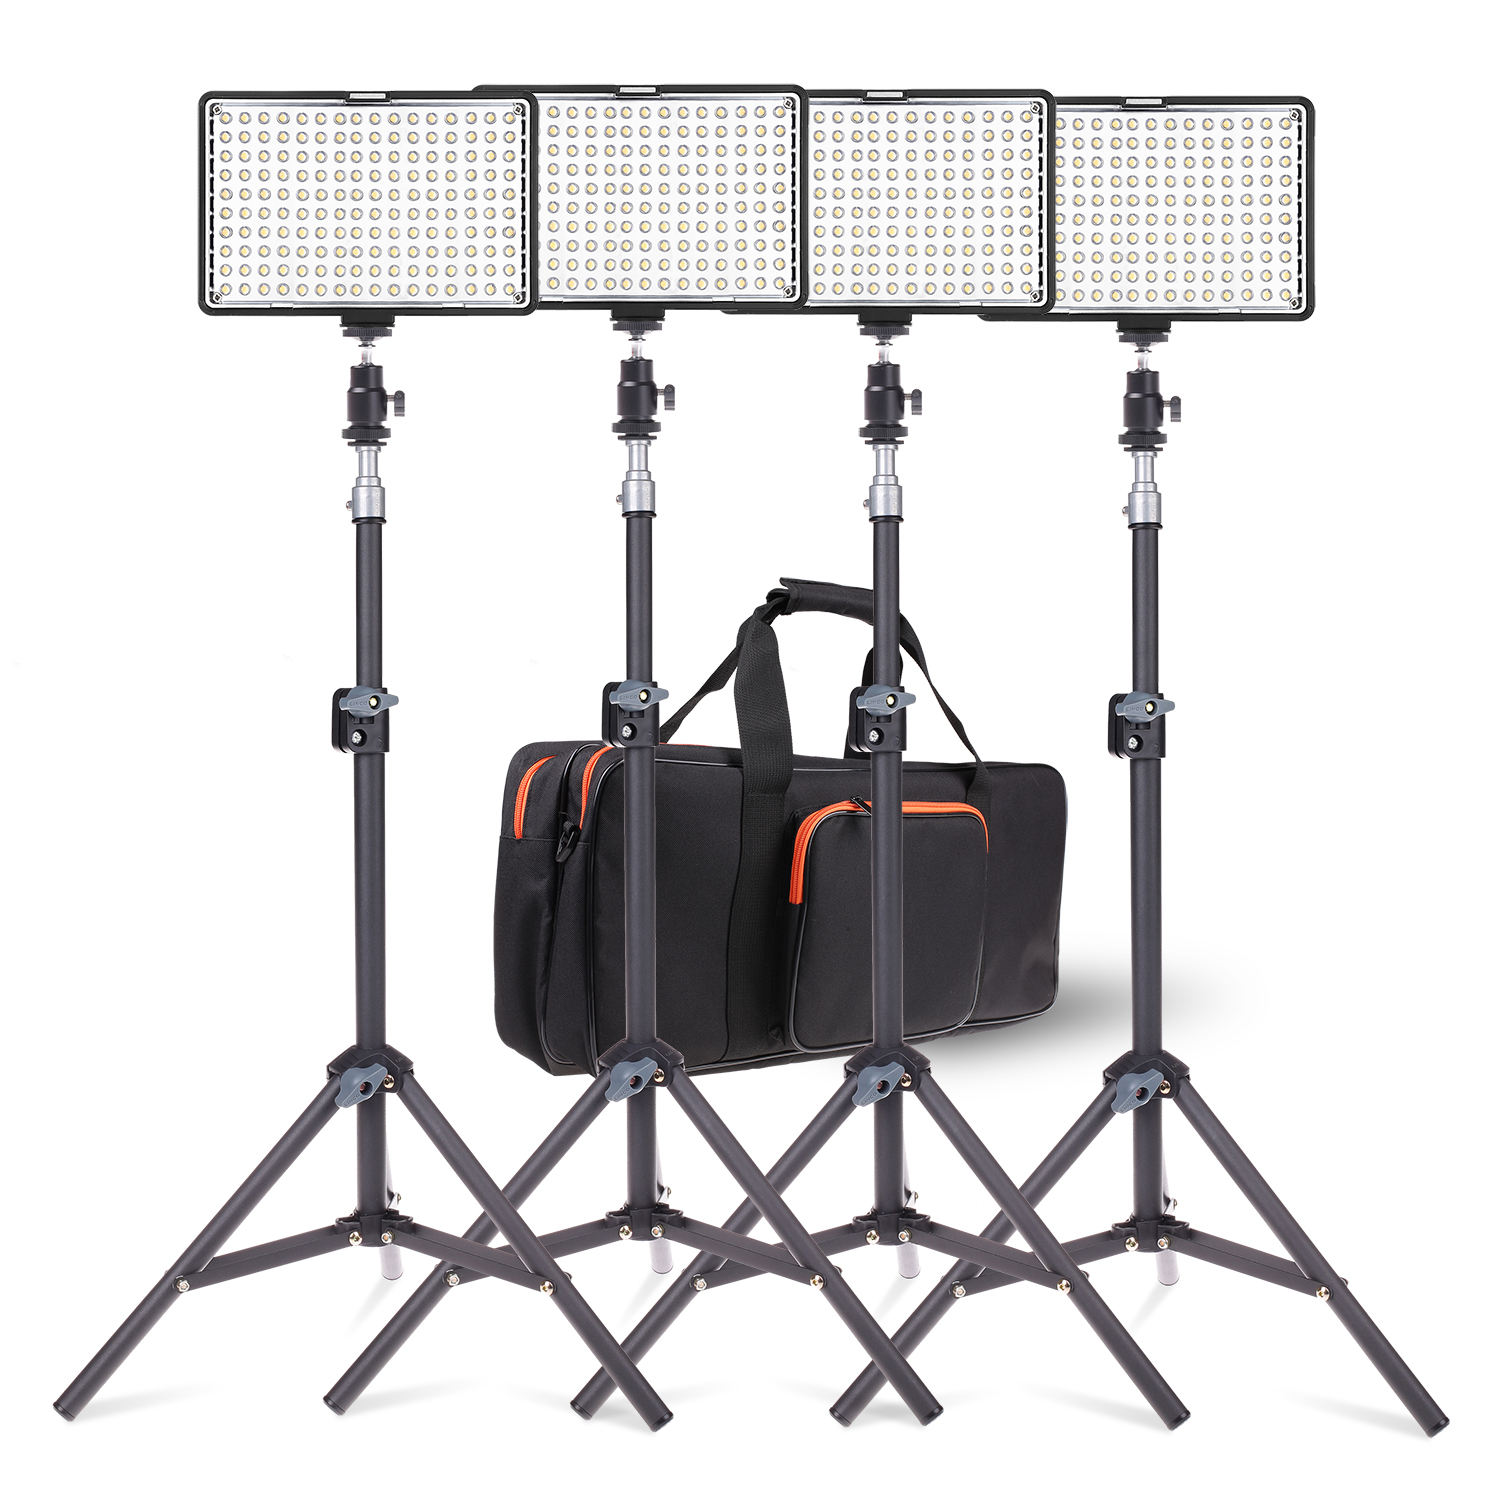 TRAVOR TL-160S 4 set 3200k-5600k video lighting photographic equipment camera studio bi-color led video fill in panel light kit